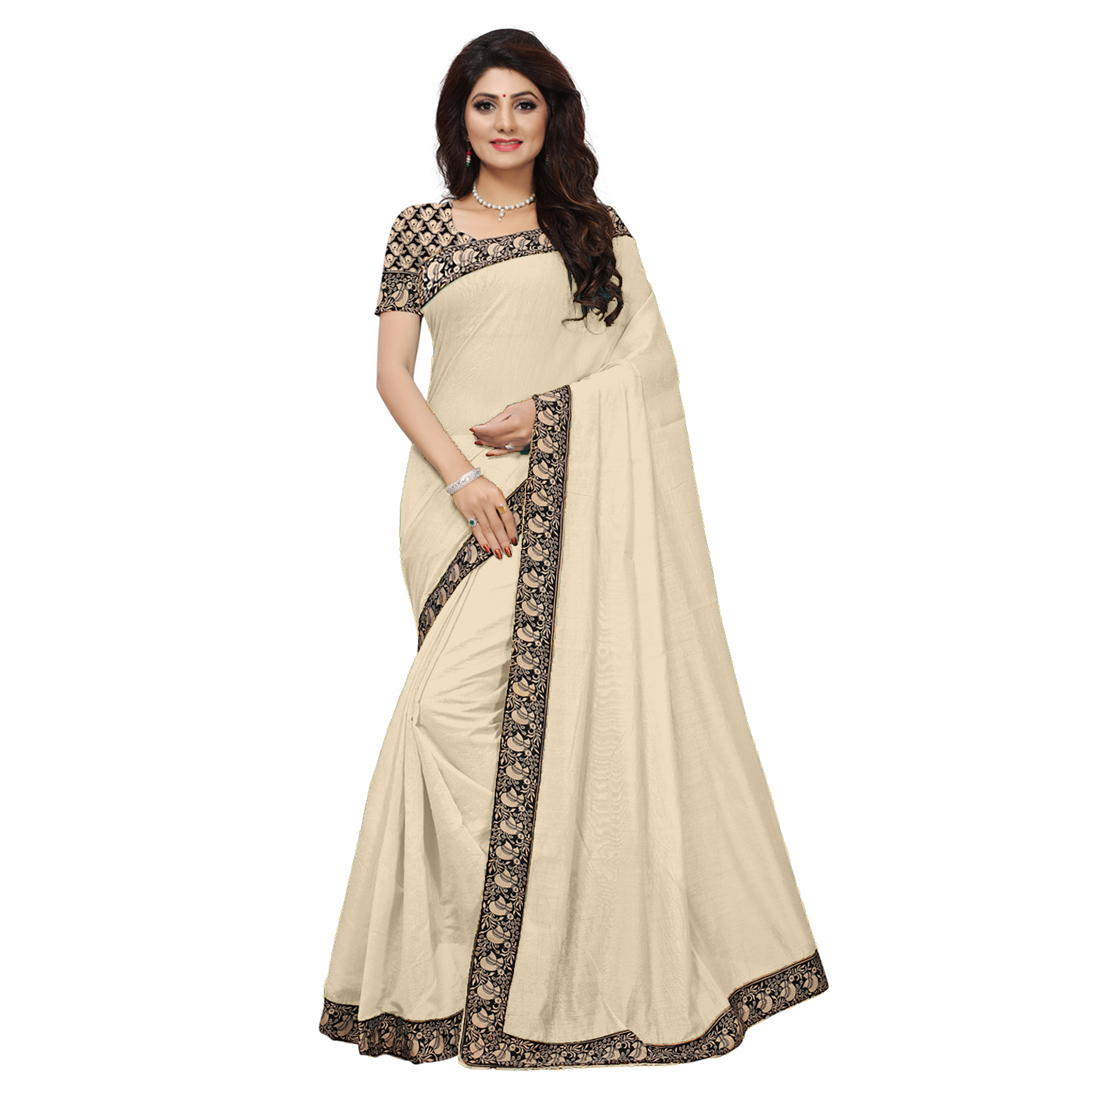 Chanderi Silk Saree, Casual Wear Saree